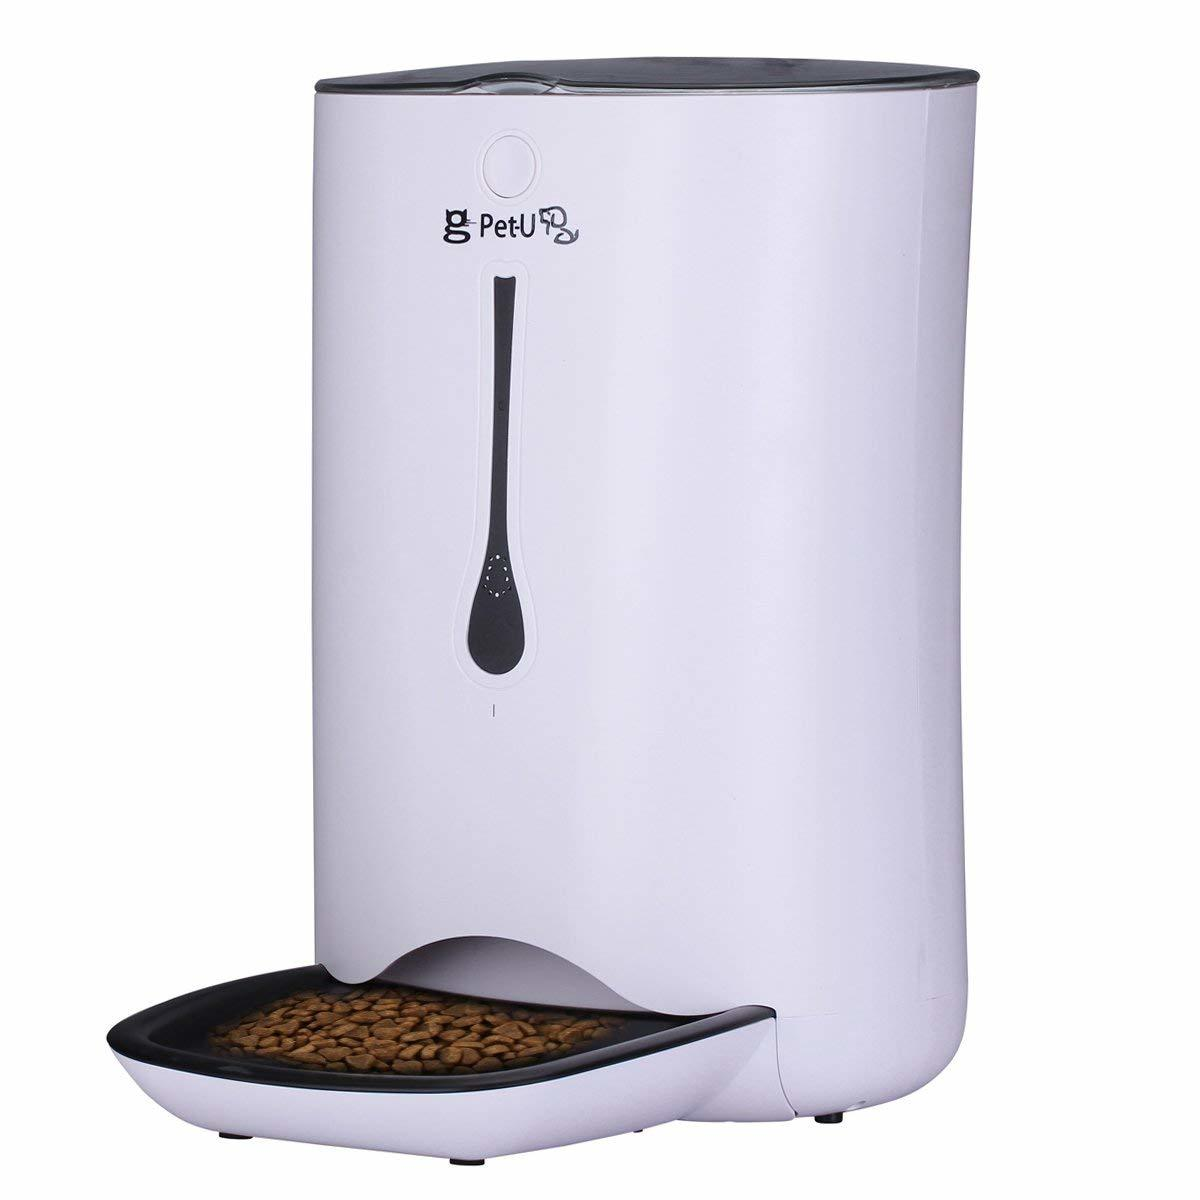 WESTLINK Automatic Pet Feeder Food Dispenser